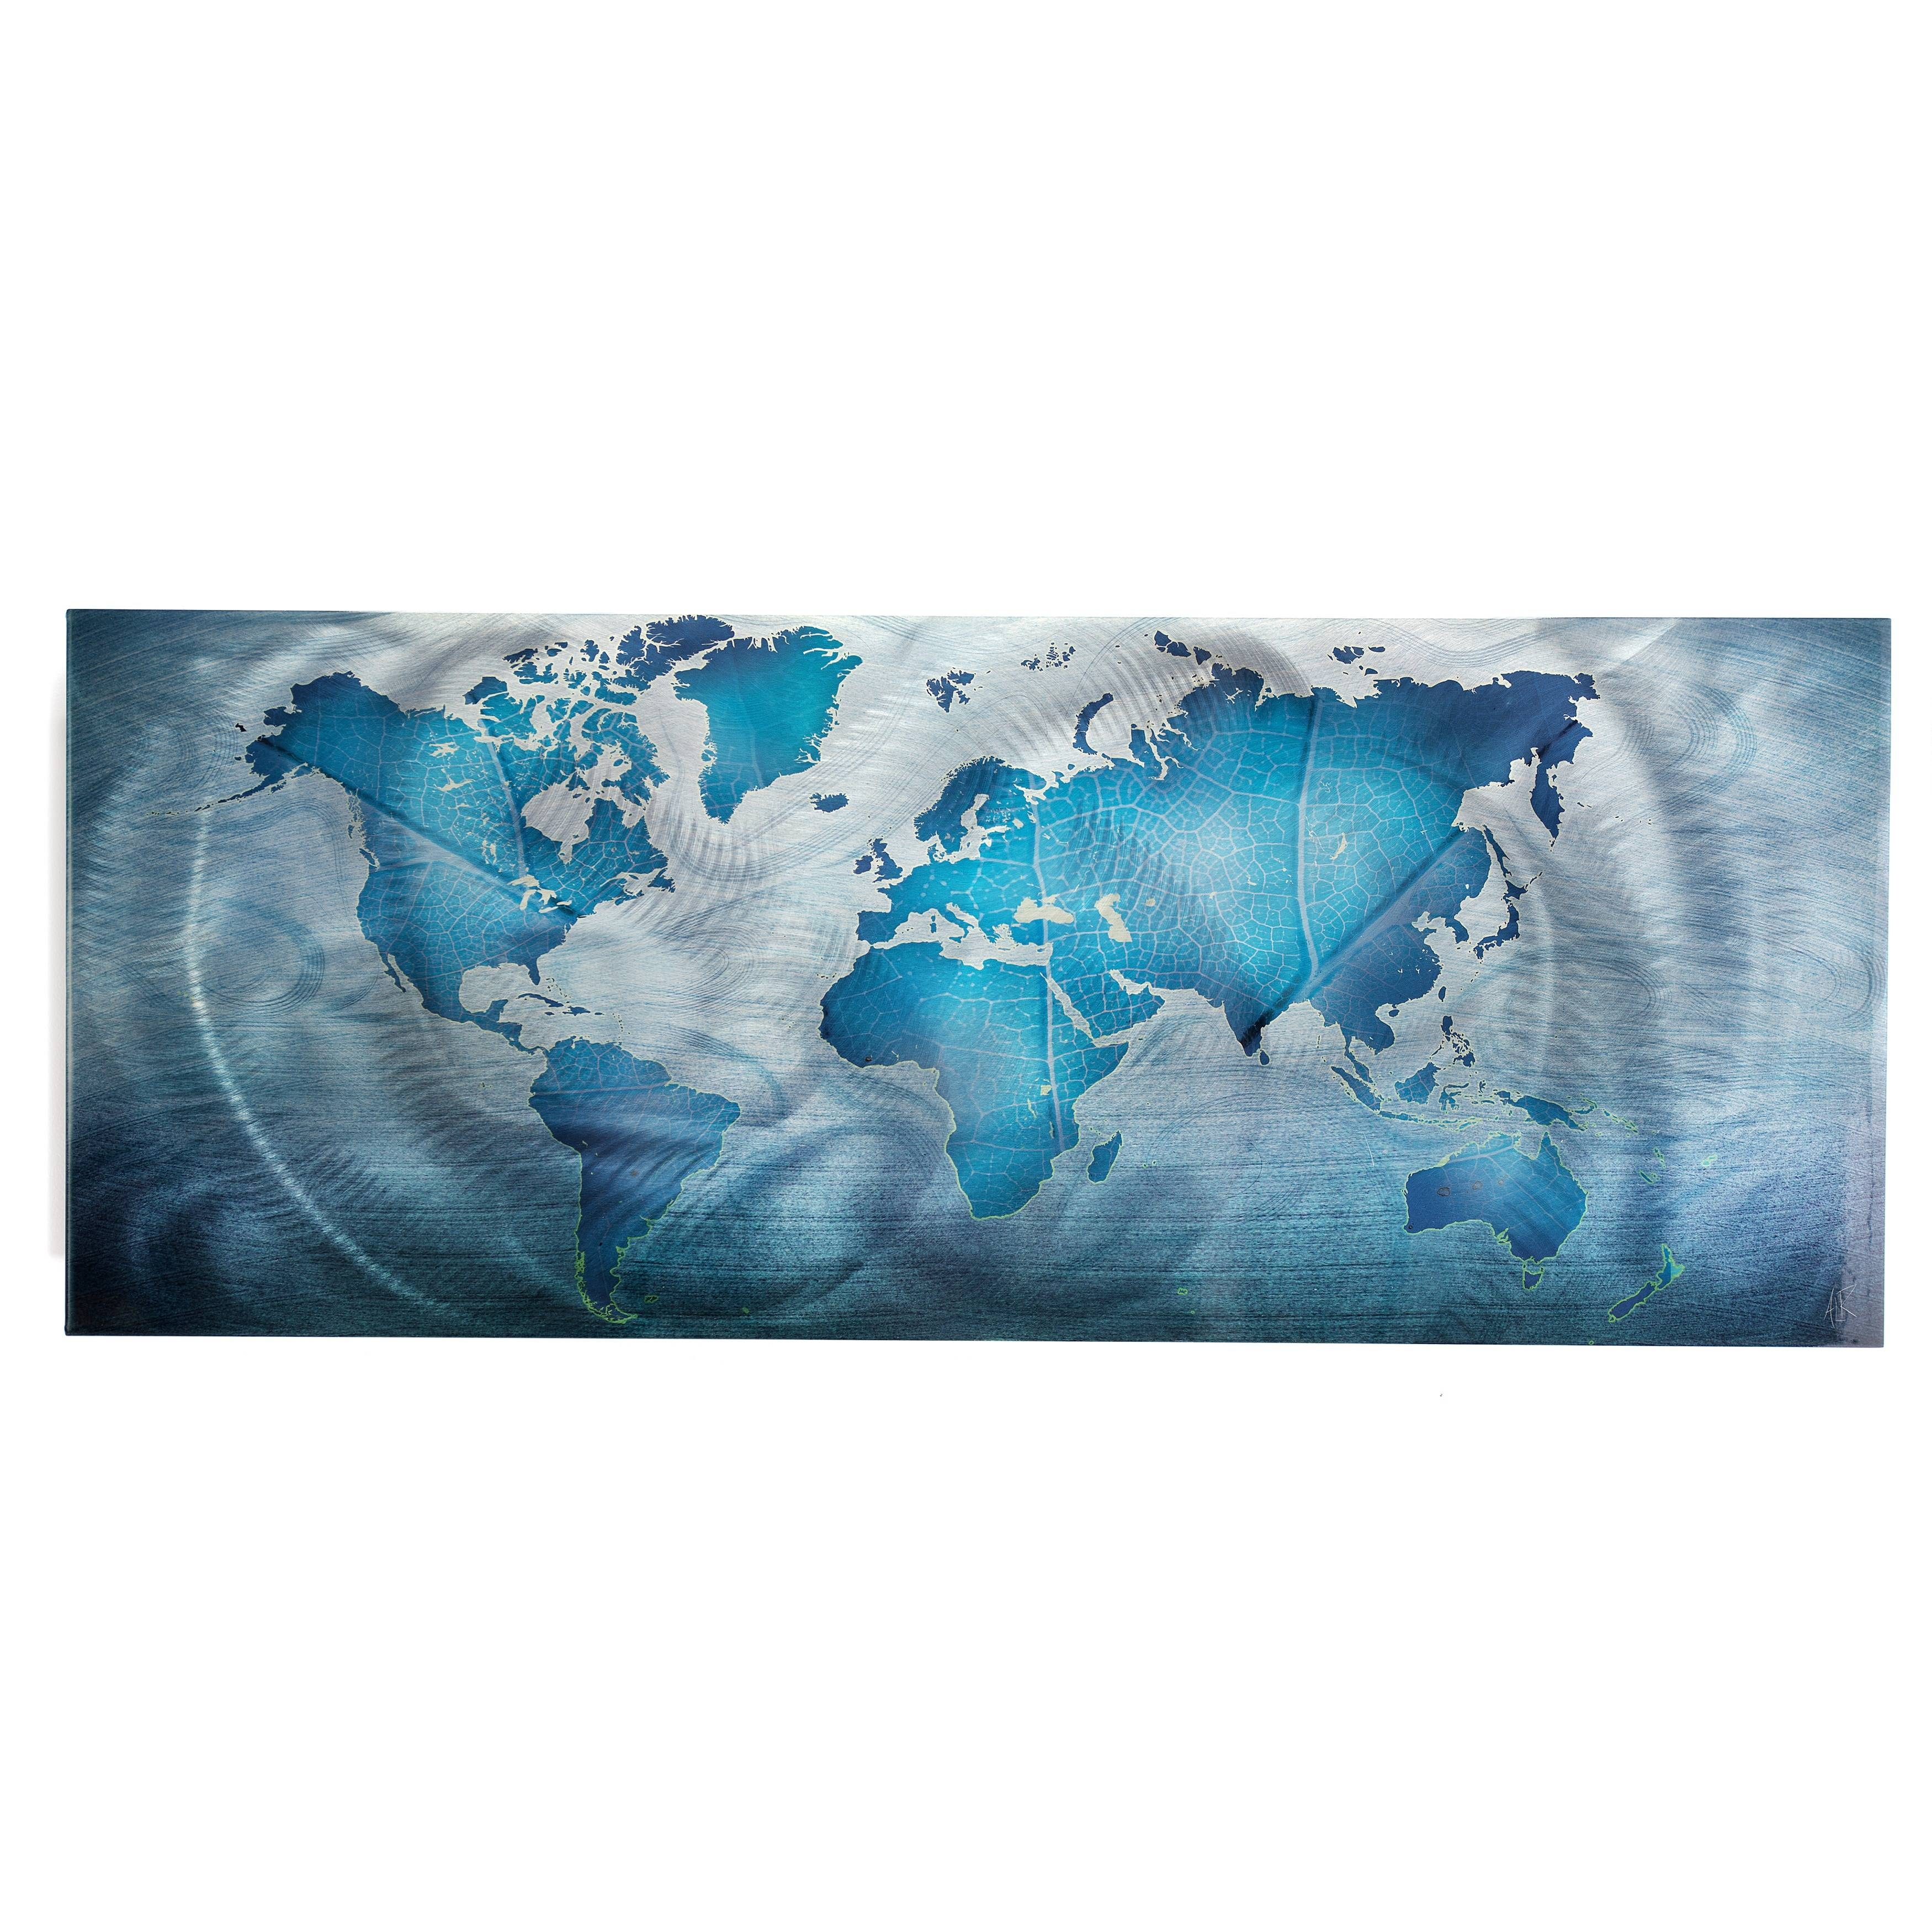 Land & Sea' Modern World Map Metal Wall Art – Free Shipping Today Intended For Most Popular Teal Metal Wall Art (View 11 of 20)